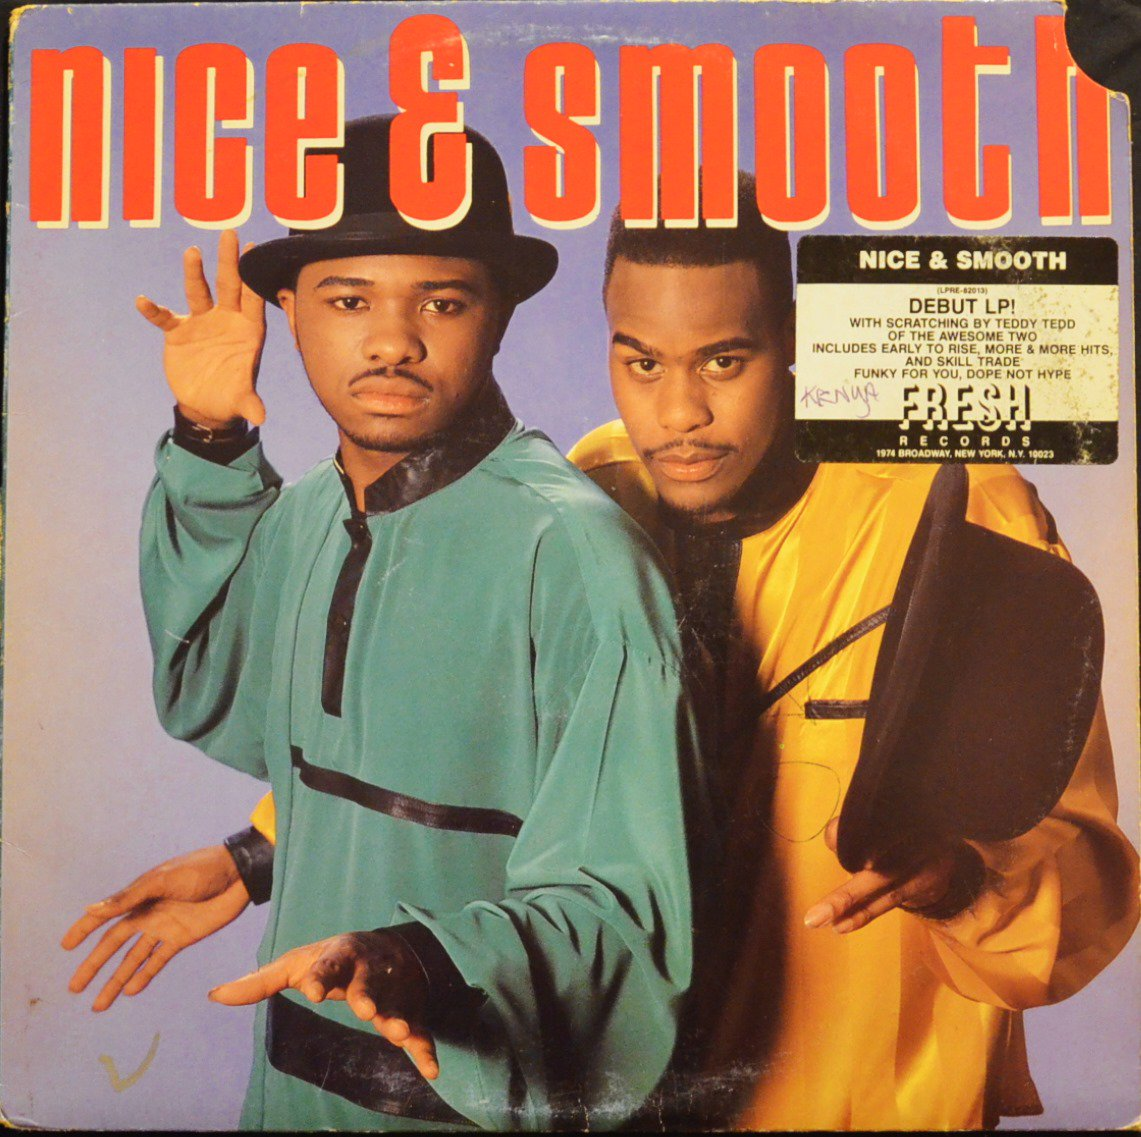 NICE & SMOOTH ‎/ NICE & SMOOTH (1LP)